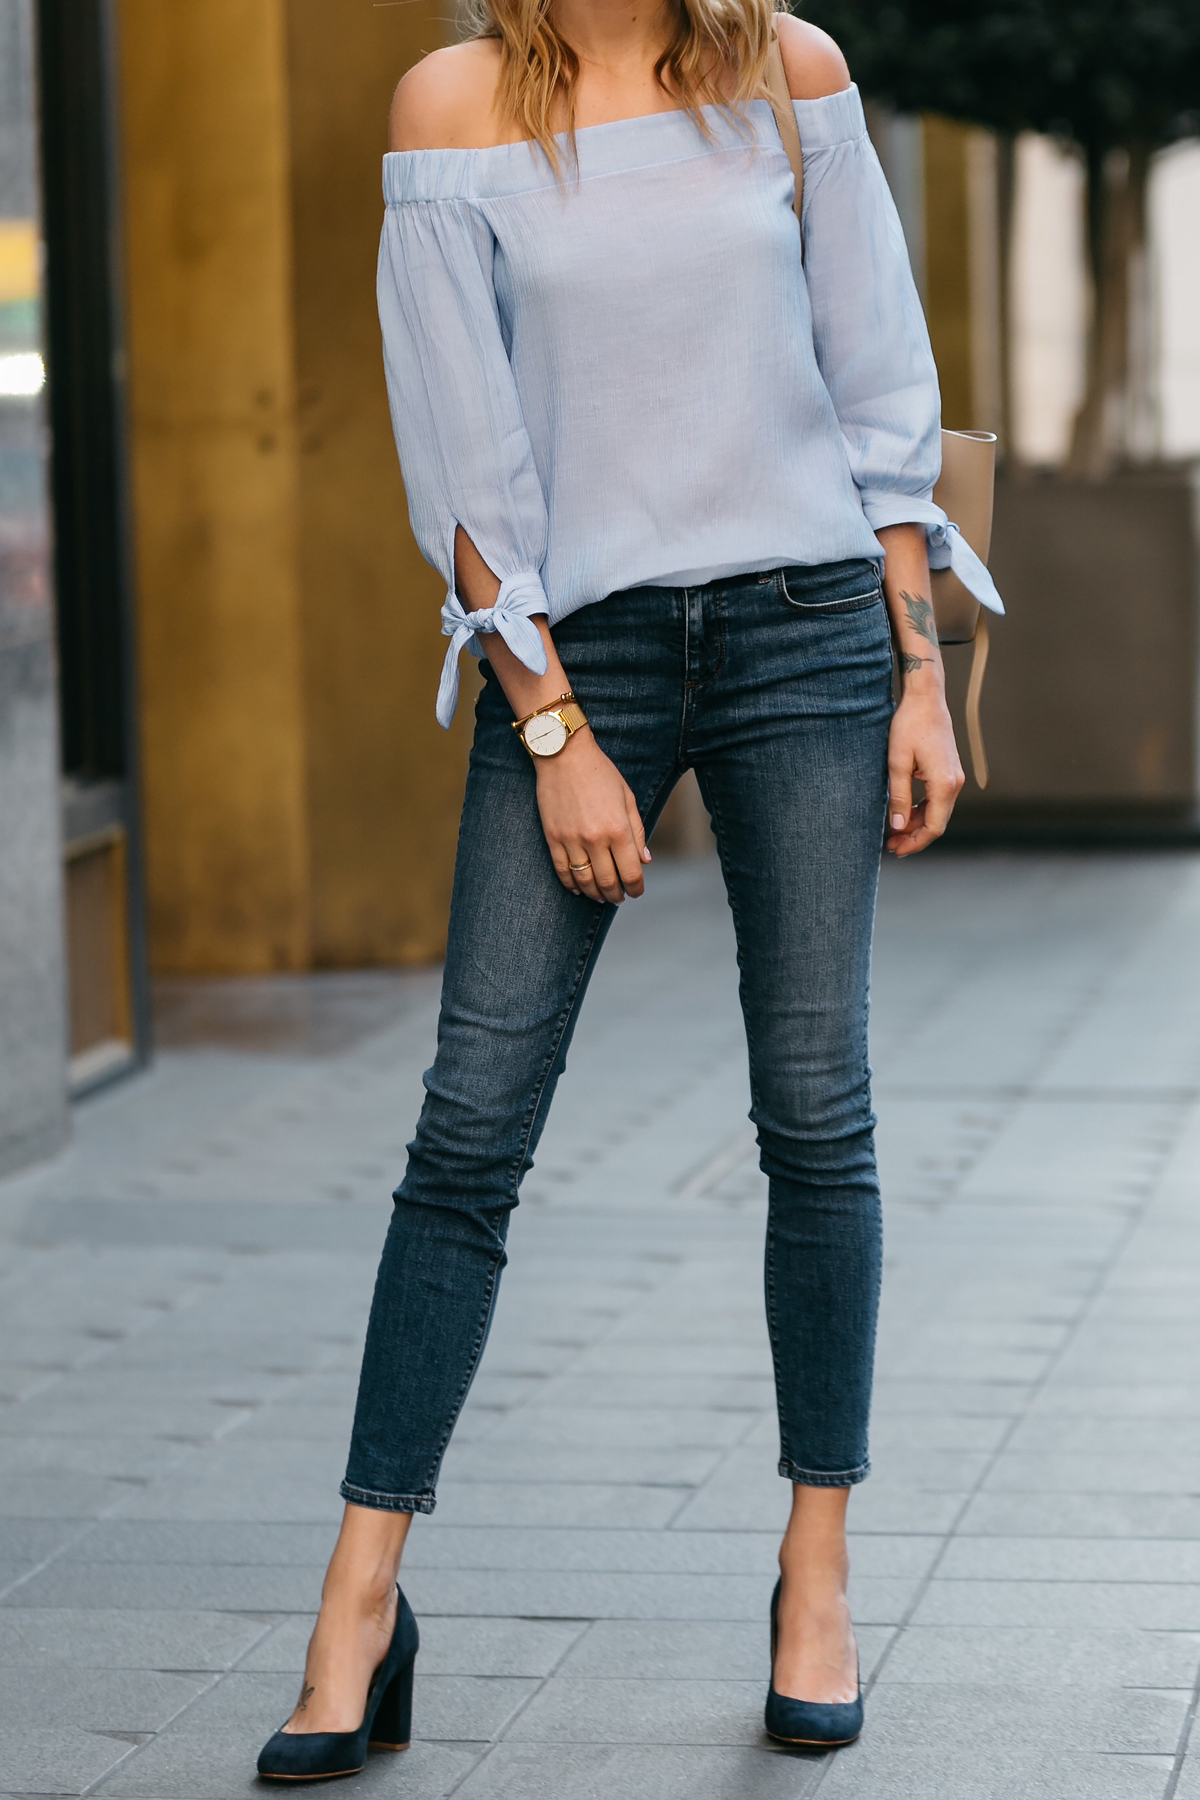 Fashion Jackson, Dallas Blogger, Fashion Blogger, Street Style, Ann Taylor Blue Tie Off-the-shoulder Top, Denim Skinny Jeans, Navy Suede Block Heel Pumps, Celine Belt Bag